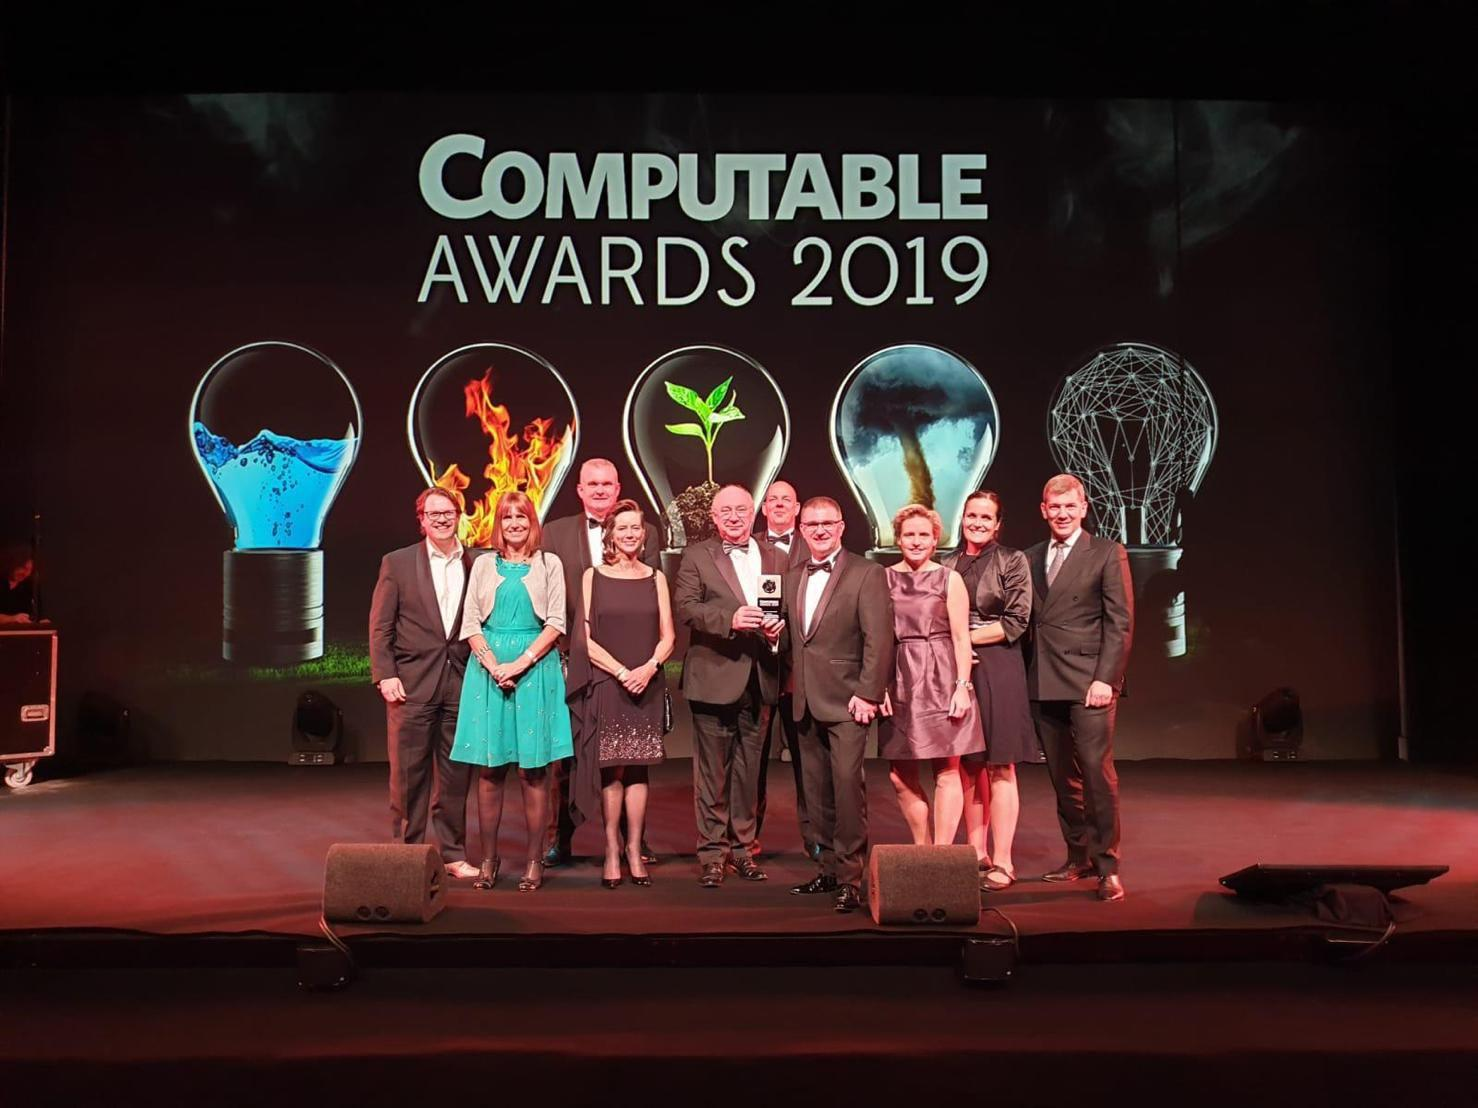 Cyberwerf Wins Computable Award 2019: ICT Project SME